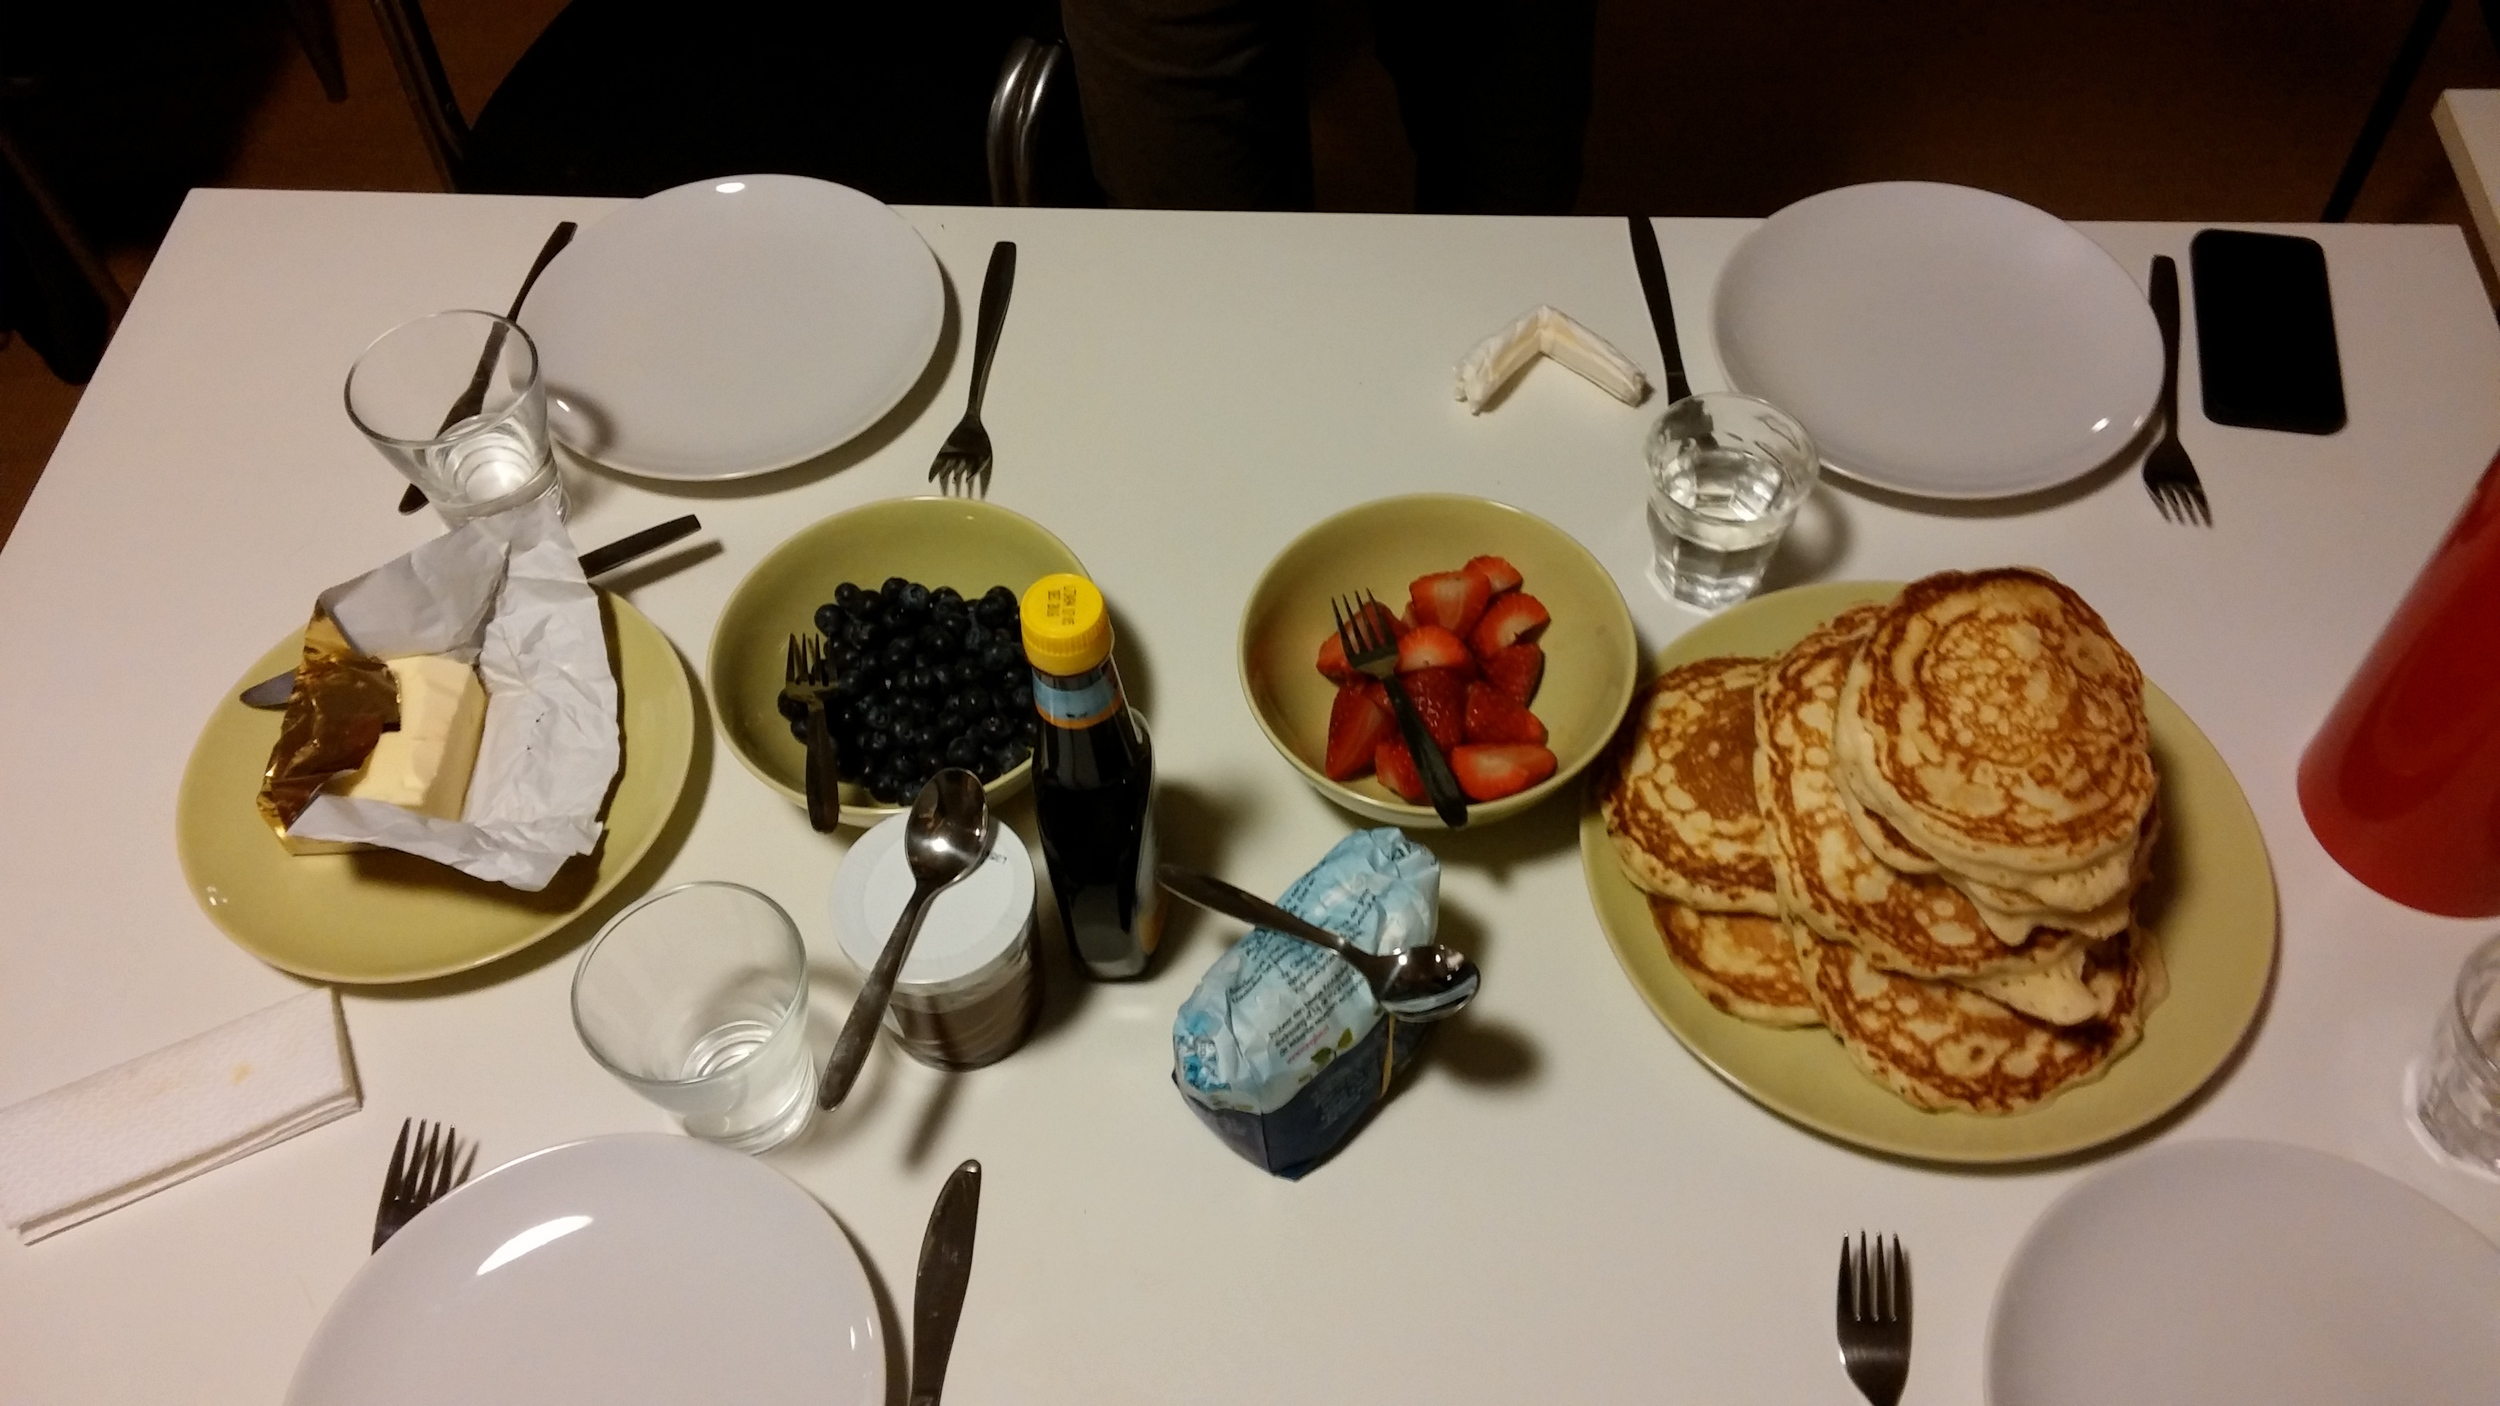 Served with butter, blueberries, strawberries, sugar, syrup, and nutella.